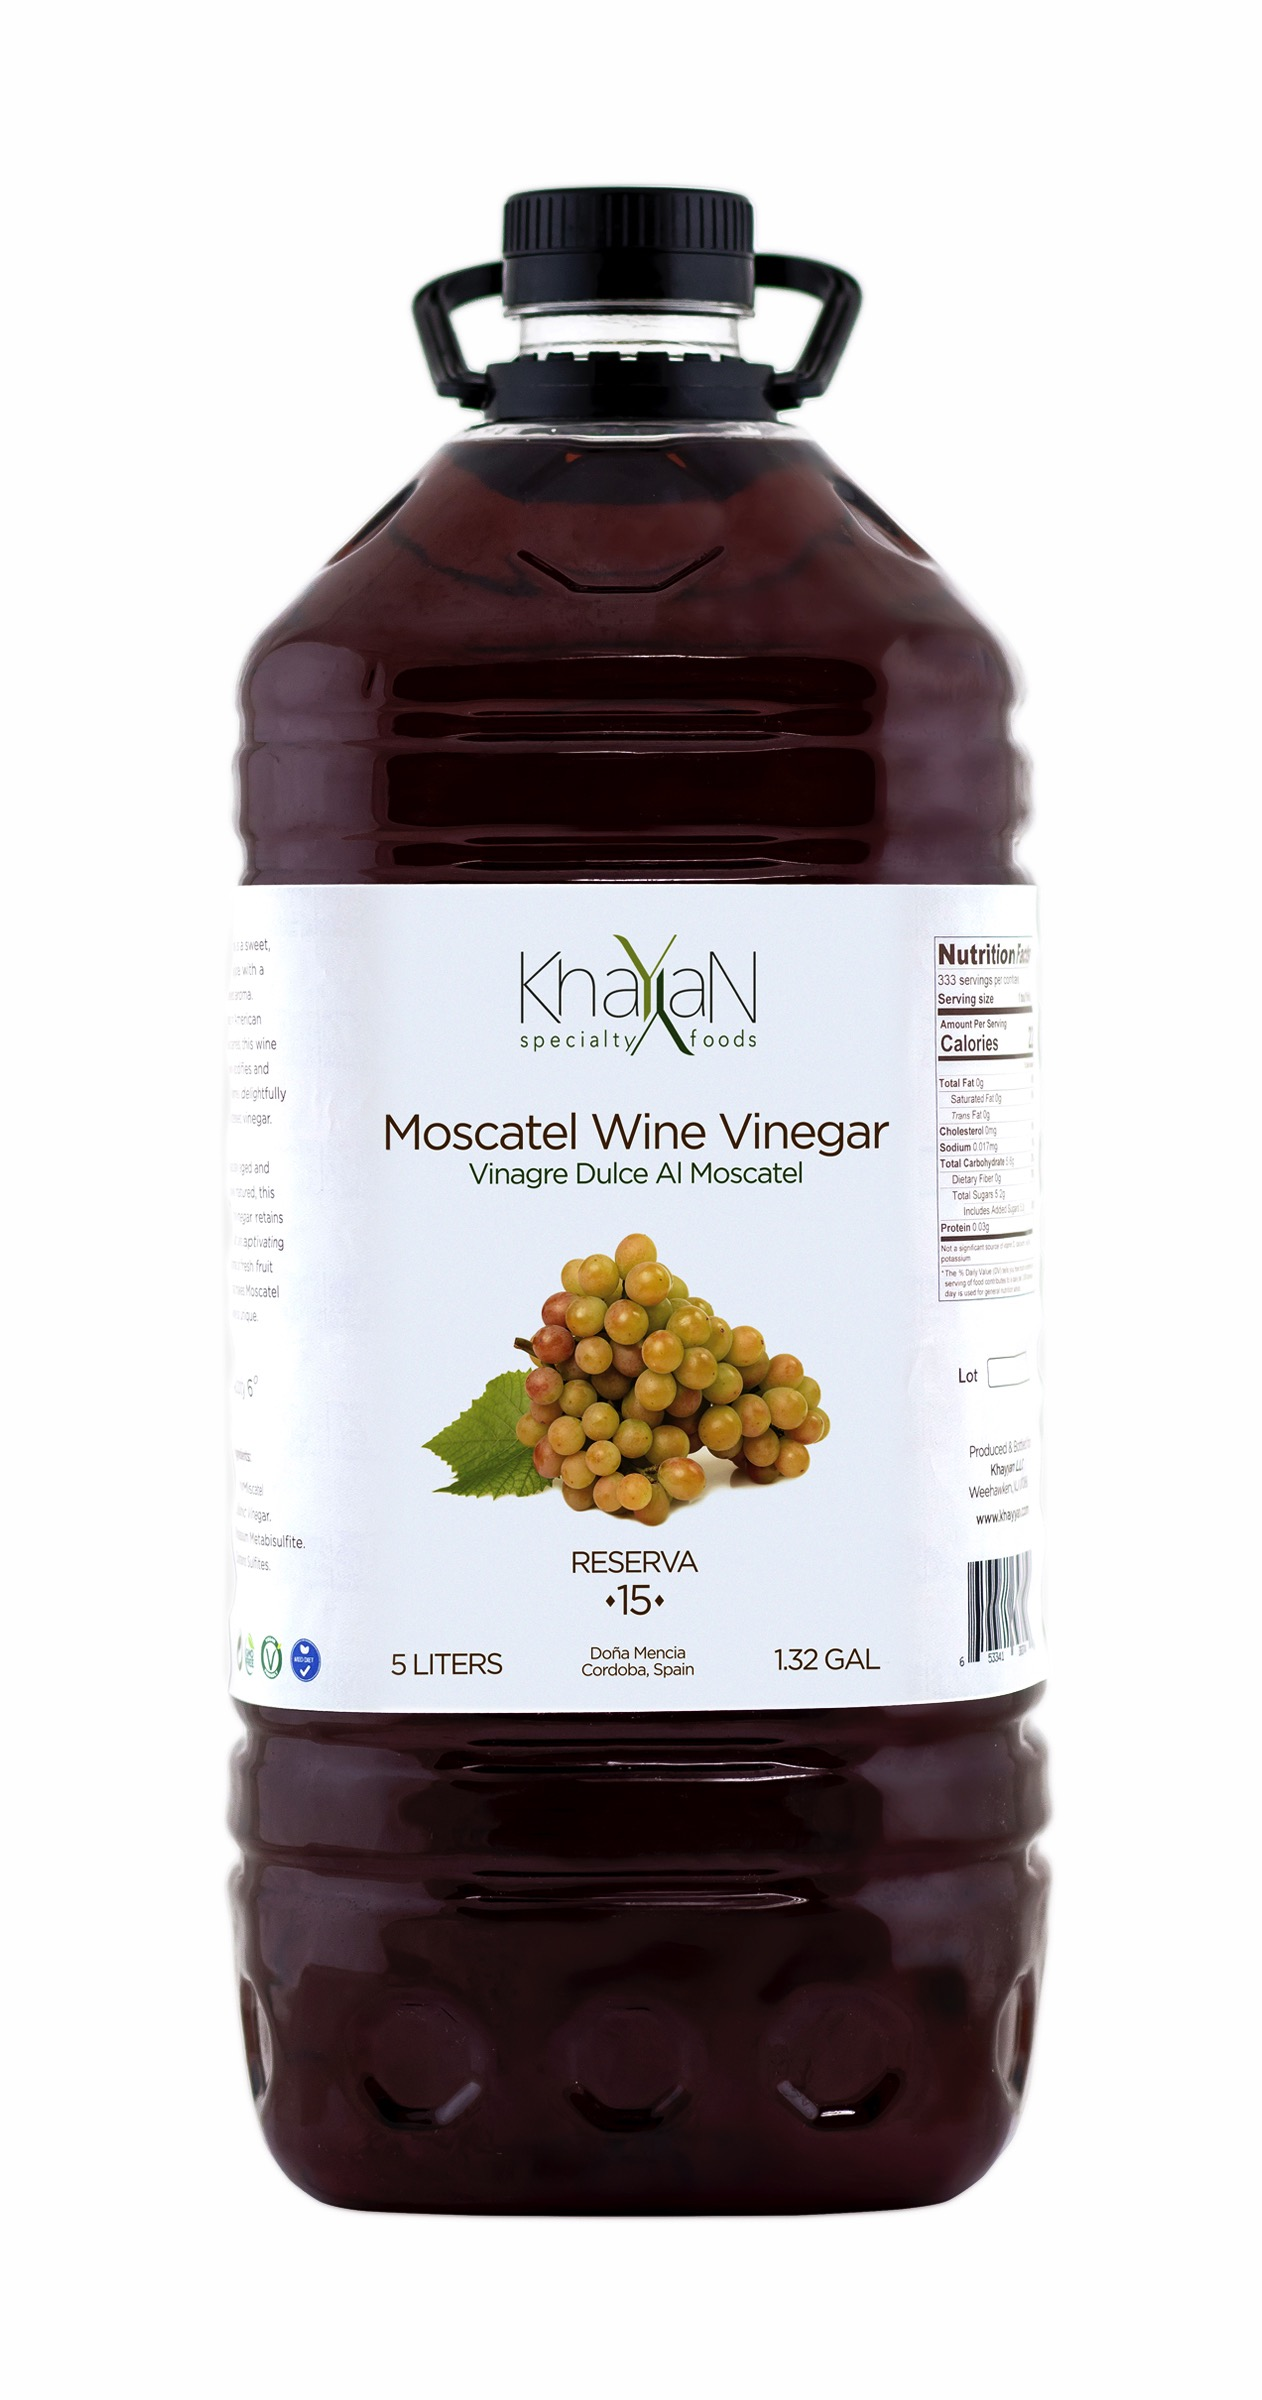 Moscatel Wine Vinegar Institutional Size